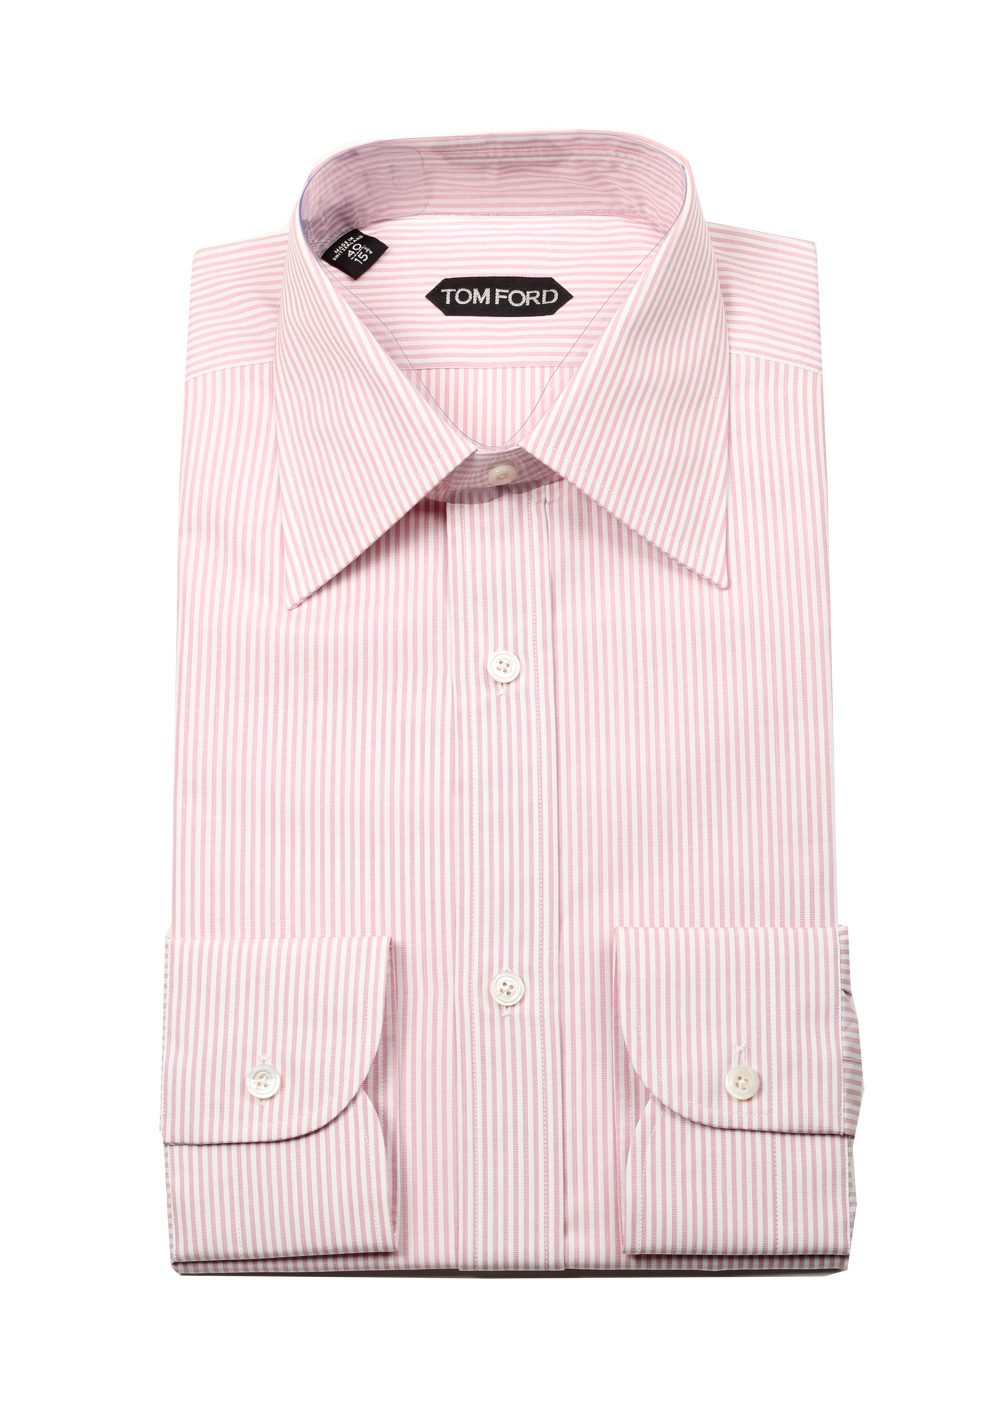 Tom ford striped white pink dress shirt size 40 15 75 u for Size 15 dress shirt